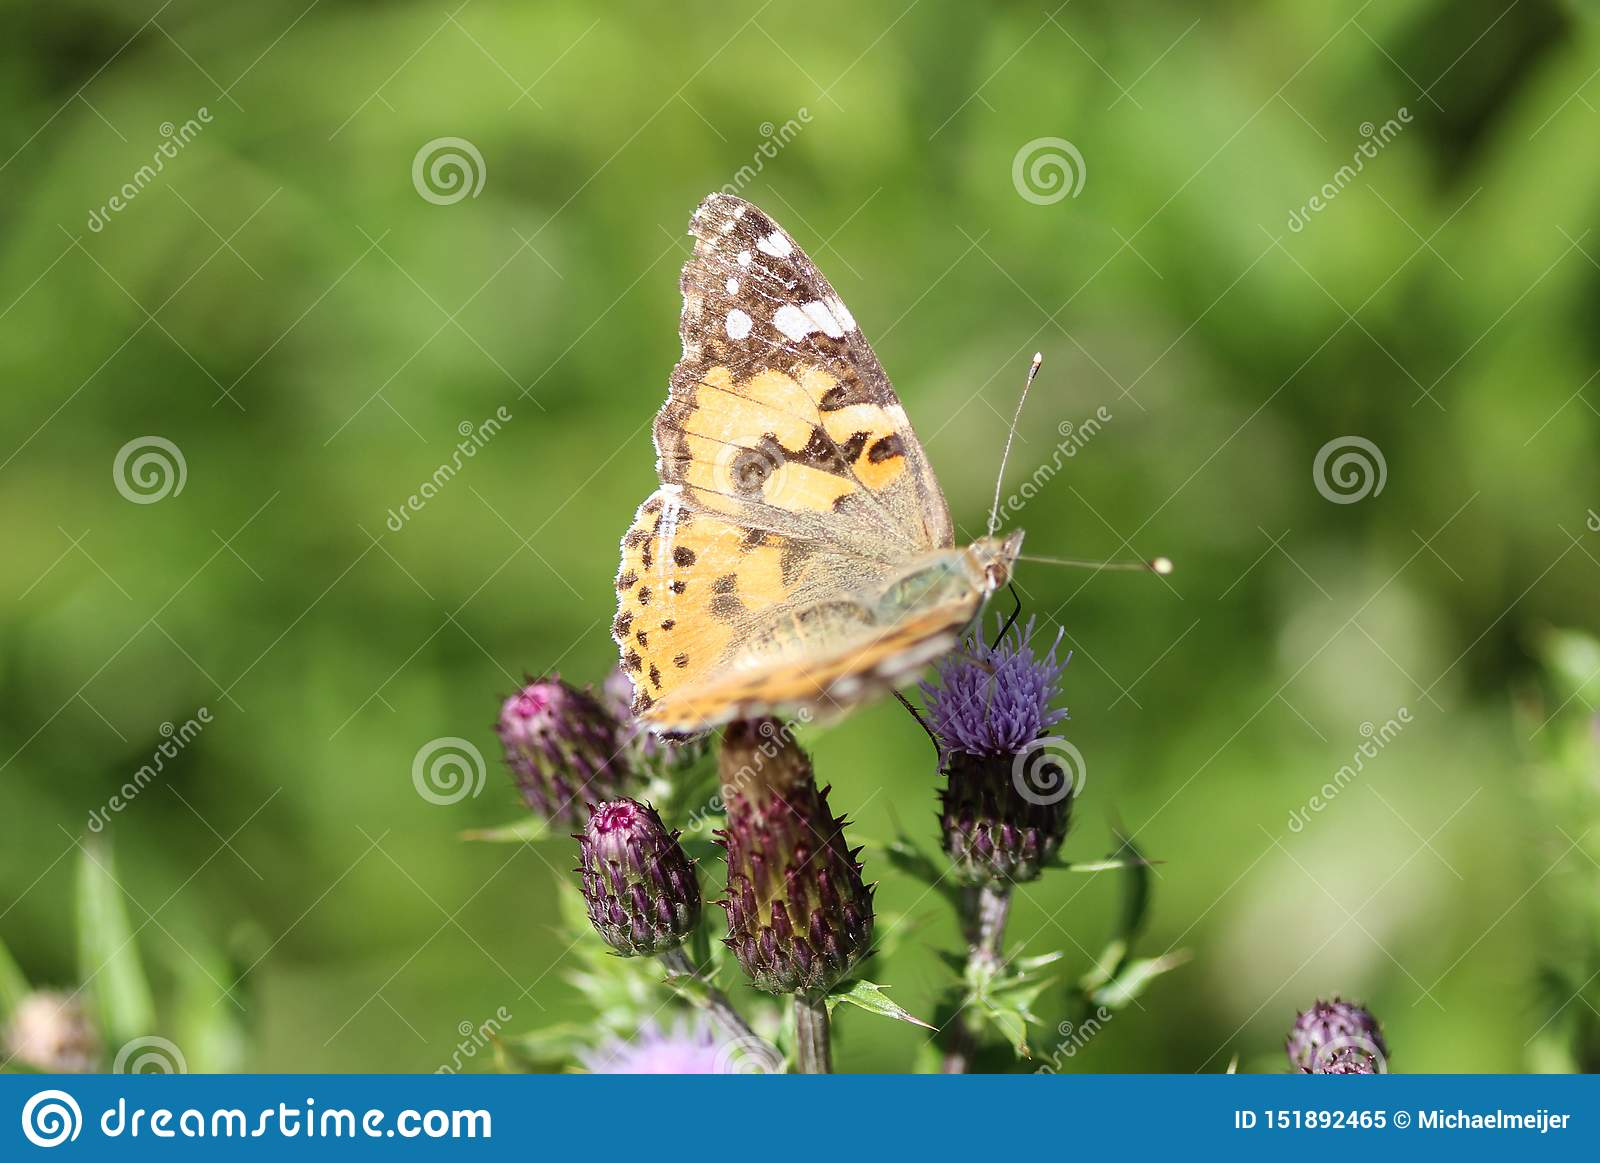 Vanessa cardui a colourful butterfly, known as the painted lady, or cosmopolitan, resting on a thistle flower